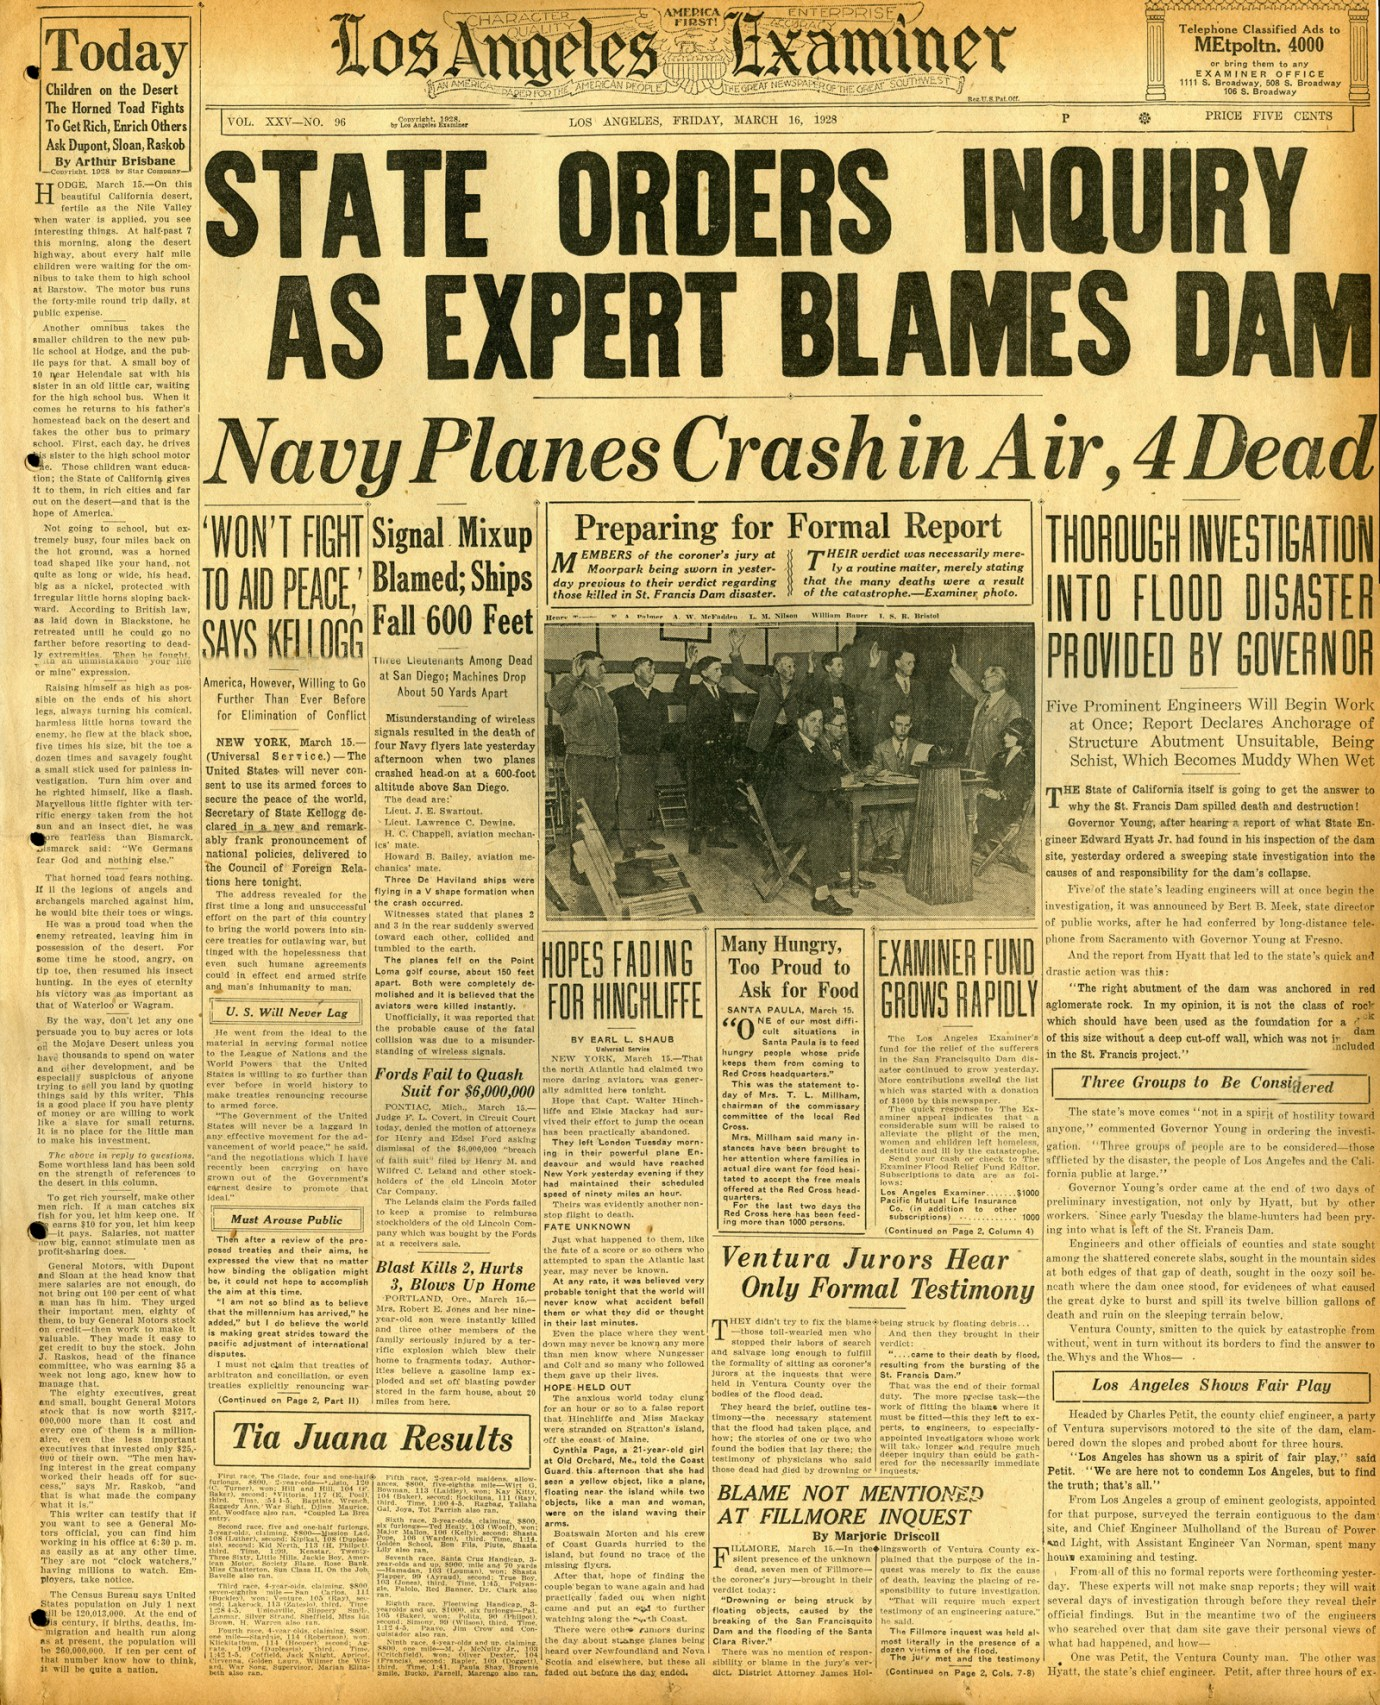 St. Francis Dam Disaster  LOS ANGELES EXAMINER  Los Angeles, California | Friday, March 16, 1928